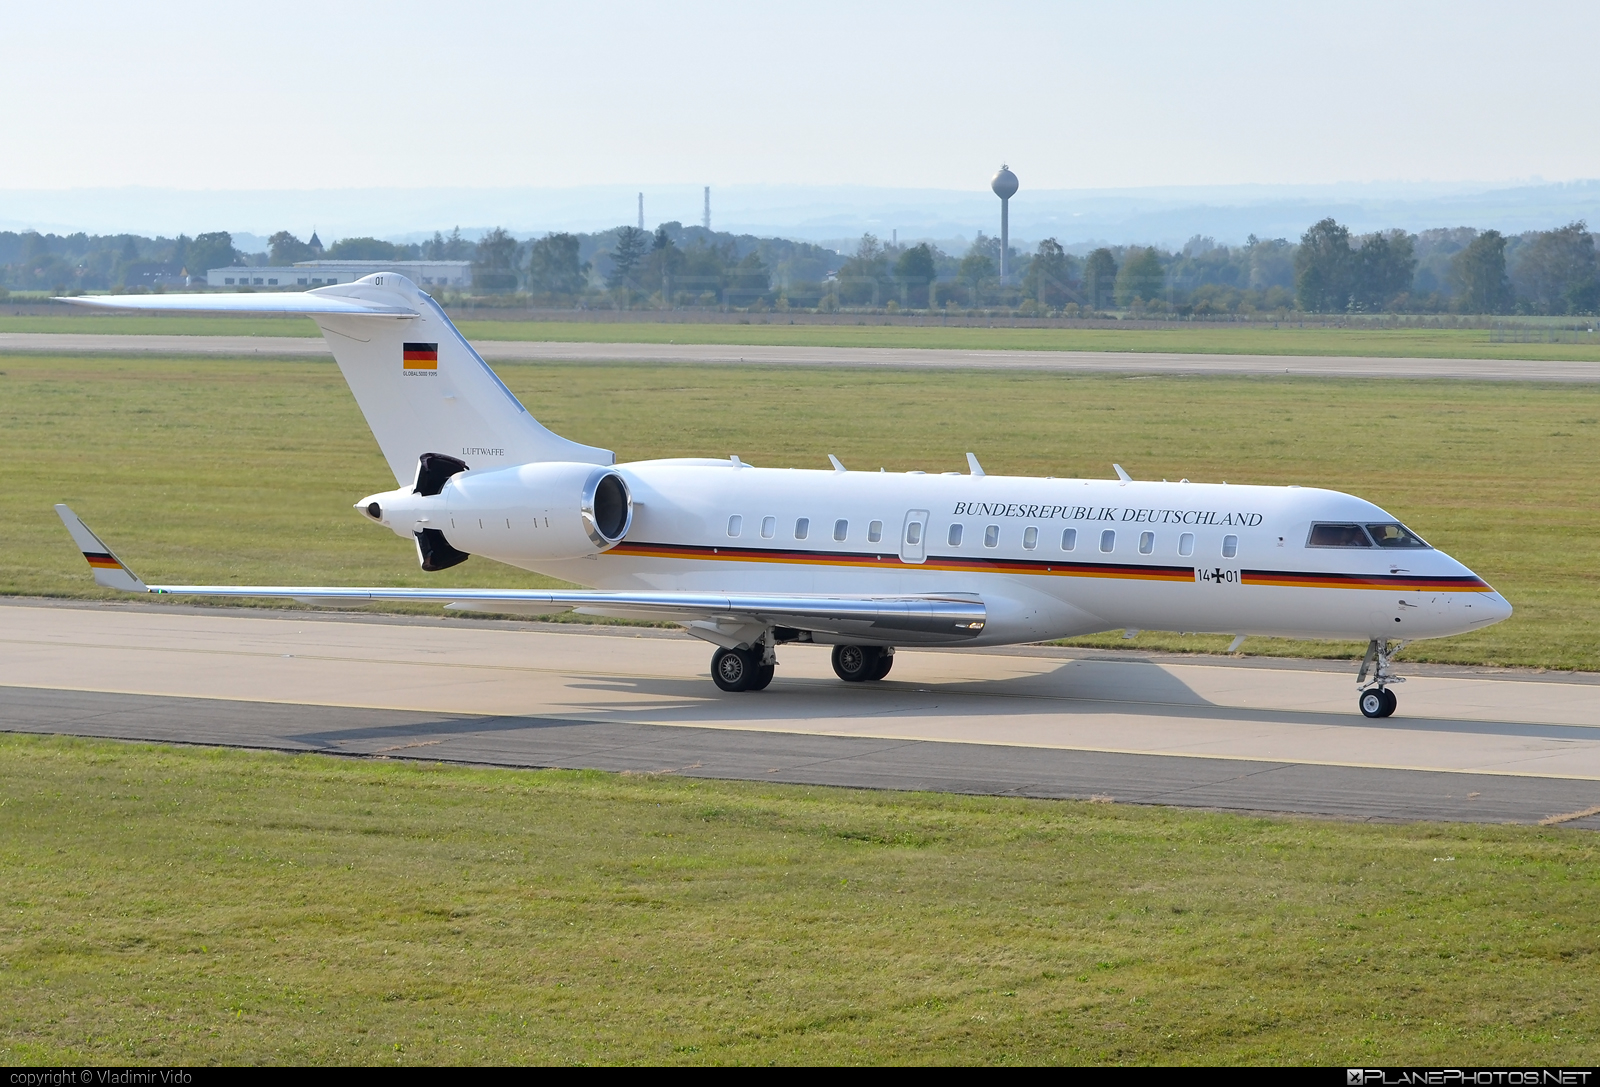 Bombardier Global 5000 (BD-700-1A11) - 14+01 operated by Luftwaffe (German Air Force) #GermanAirForce #bd7001a11 #bombardier #bombardierglobal5000 #global5000 #luftwaffe